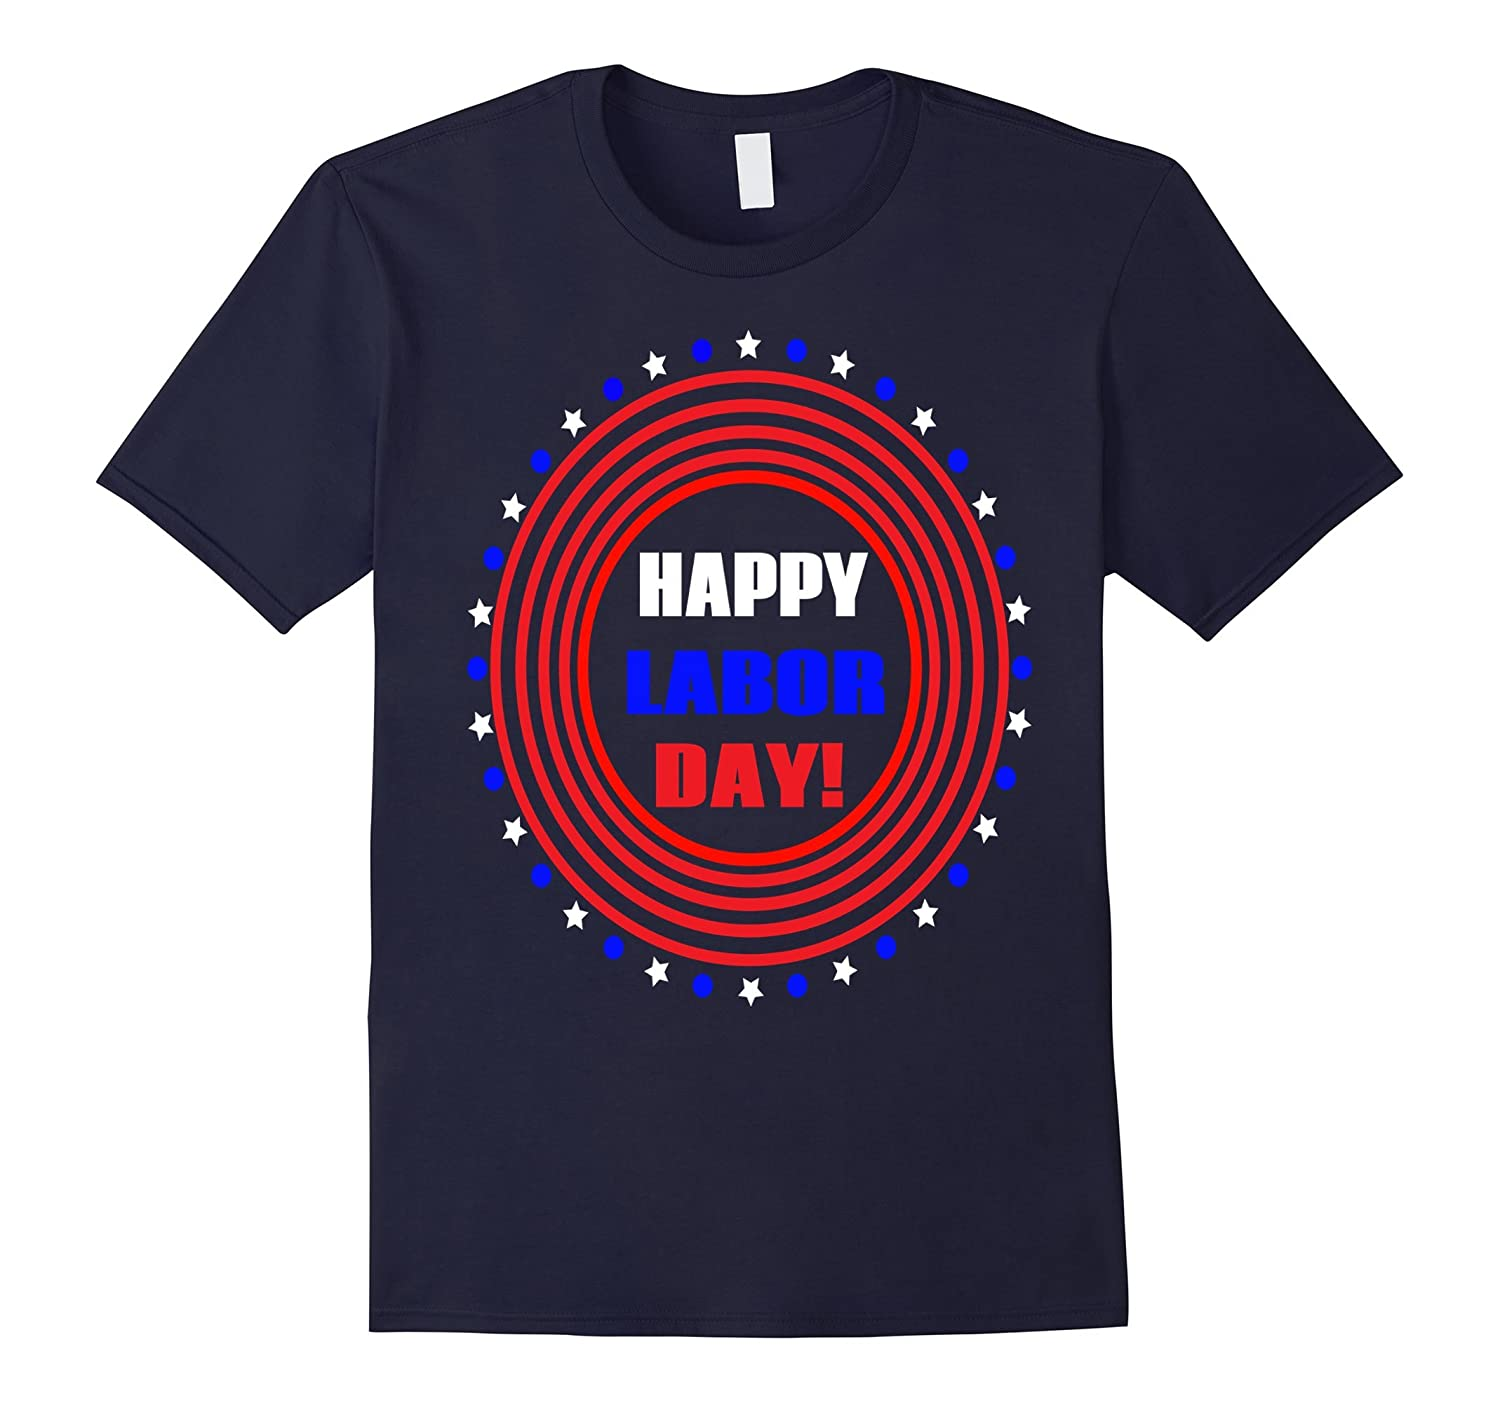 Happy Labor Day T-Shirt Men Women Gift-BN